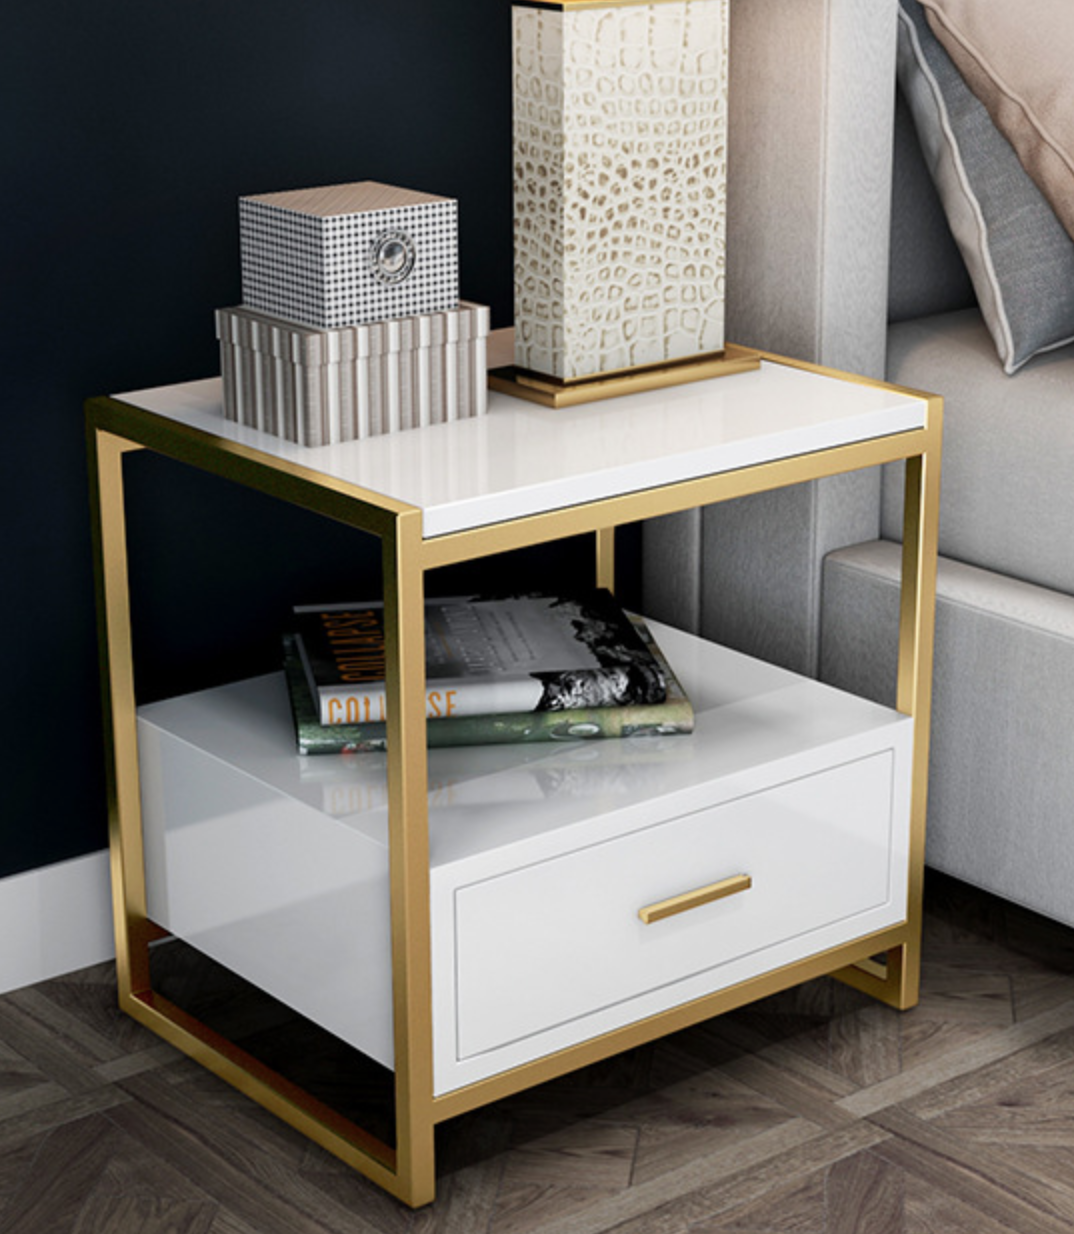 Darli Bedside Cabinet Chic Bedside Table White Bedside Table Chesterfield Sofa Living Room